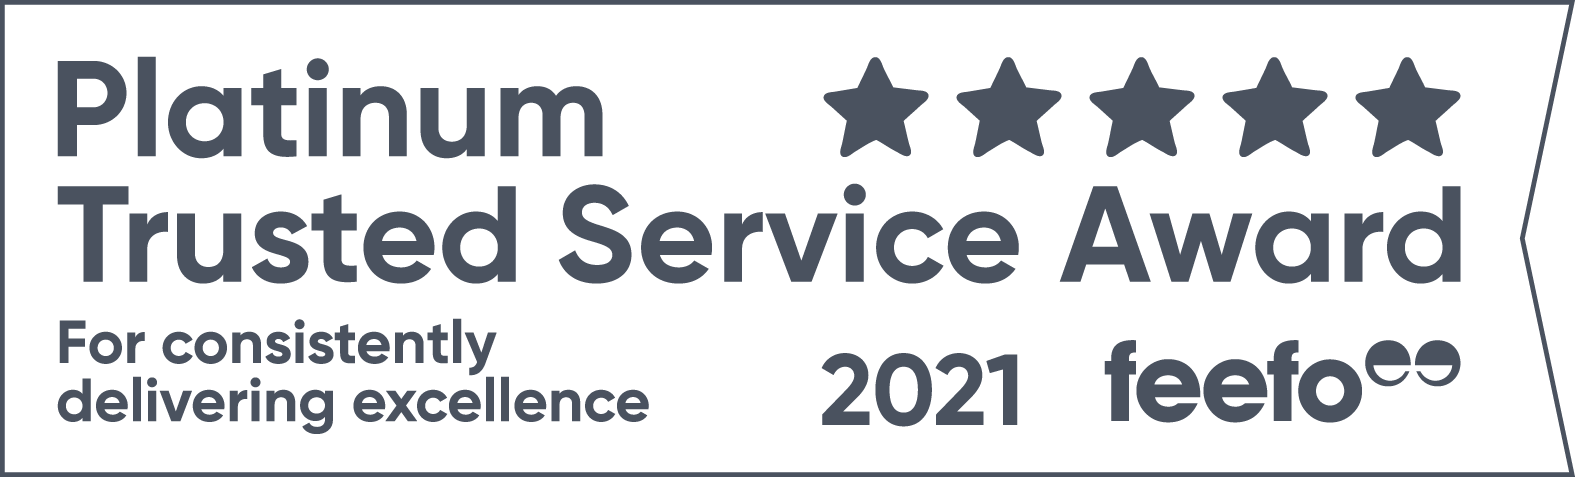 Feefo 2021 Platinum Service Award